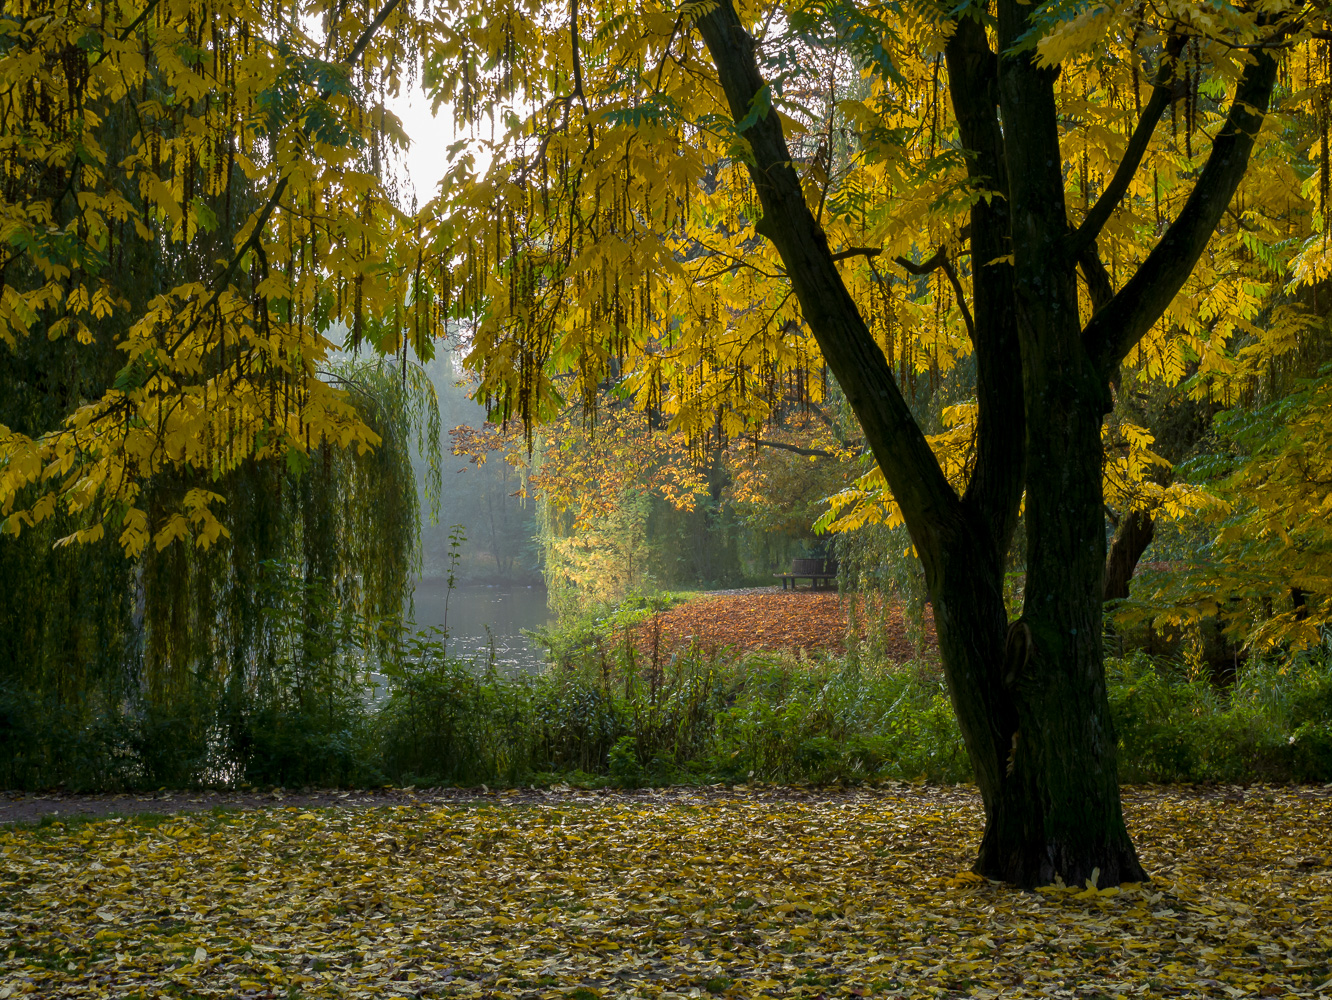 Autumn mood at the pond